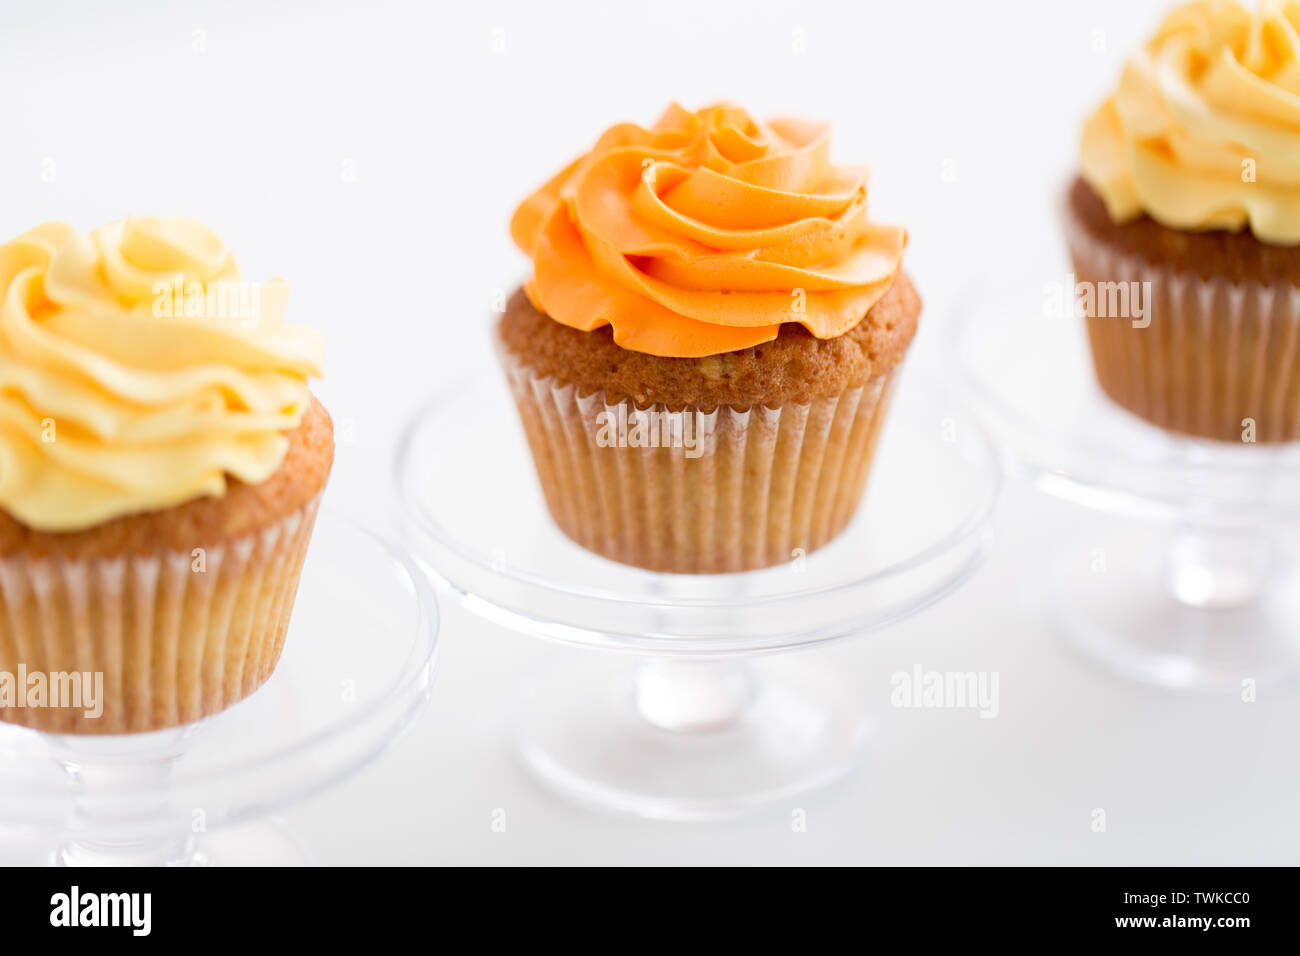 cupcakes with frosting on confectionery stands - Stock Image